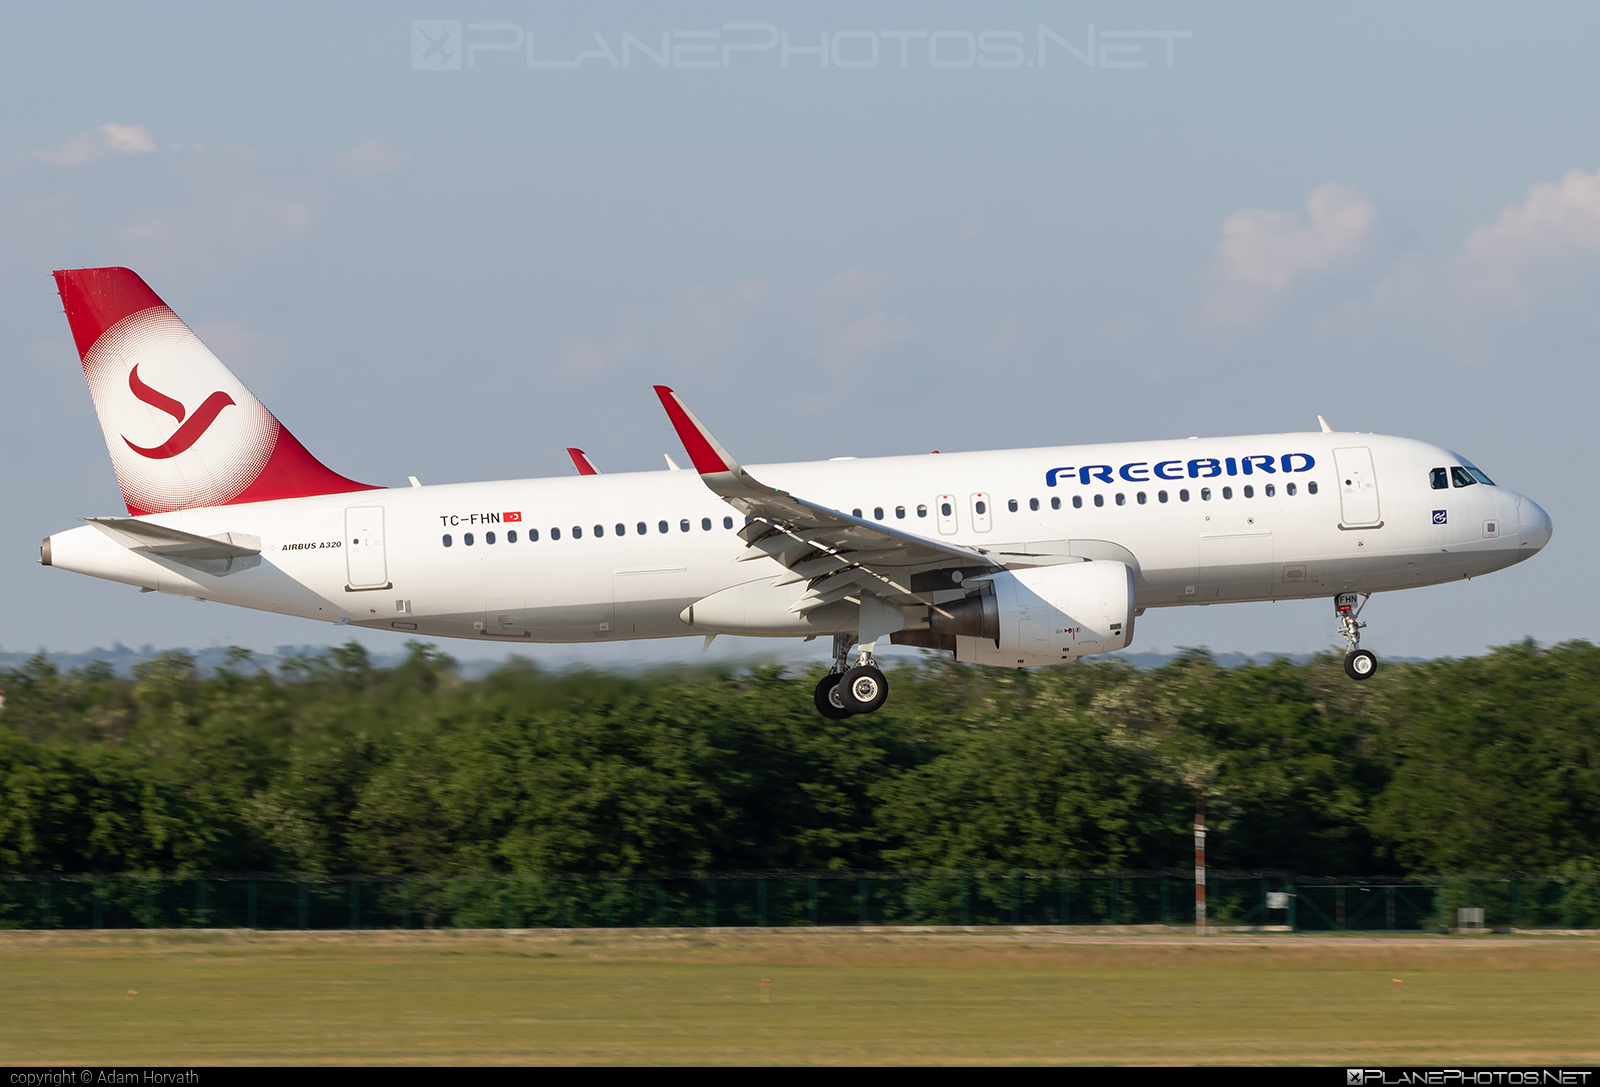 Airbus A320-214 - TC-FHN operated by Freebird Airlines #FreebirdAirlines #a320 #a320family #airbus #airbus320